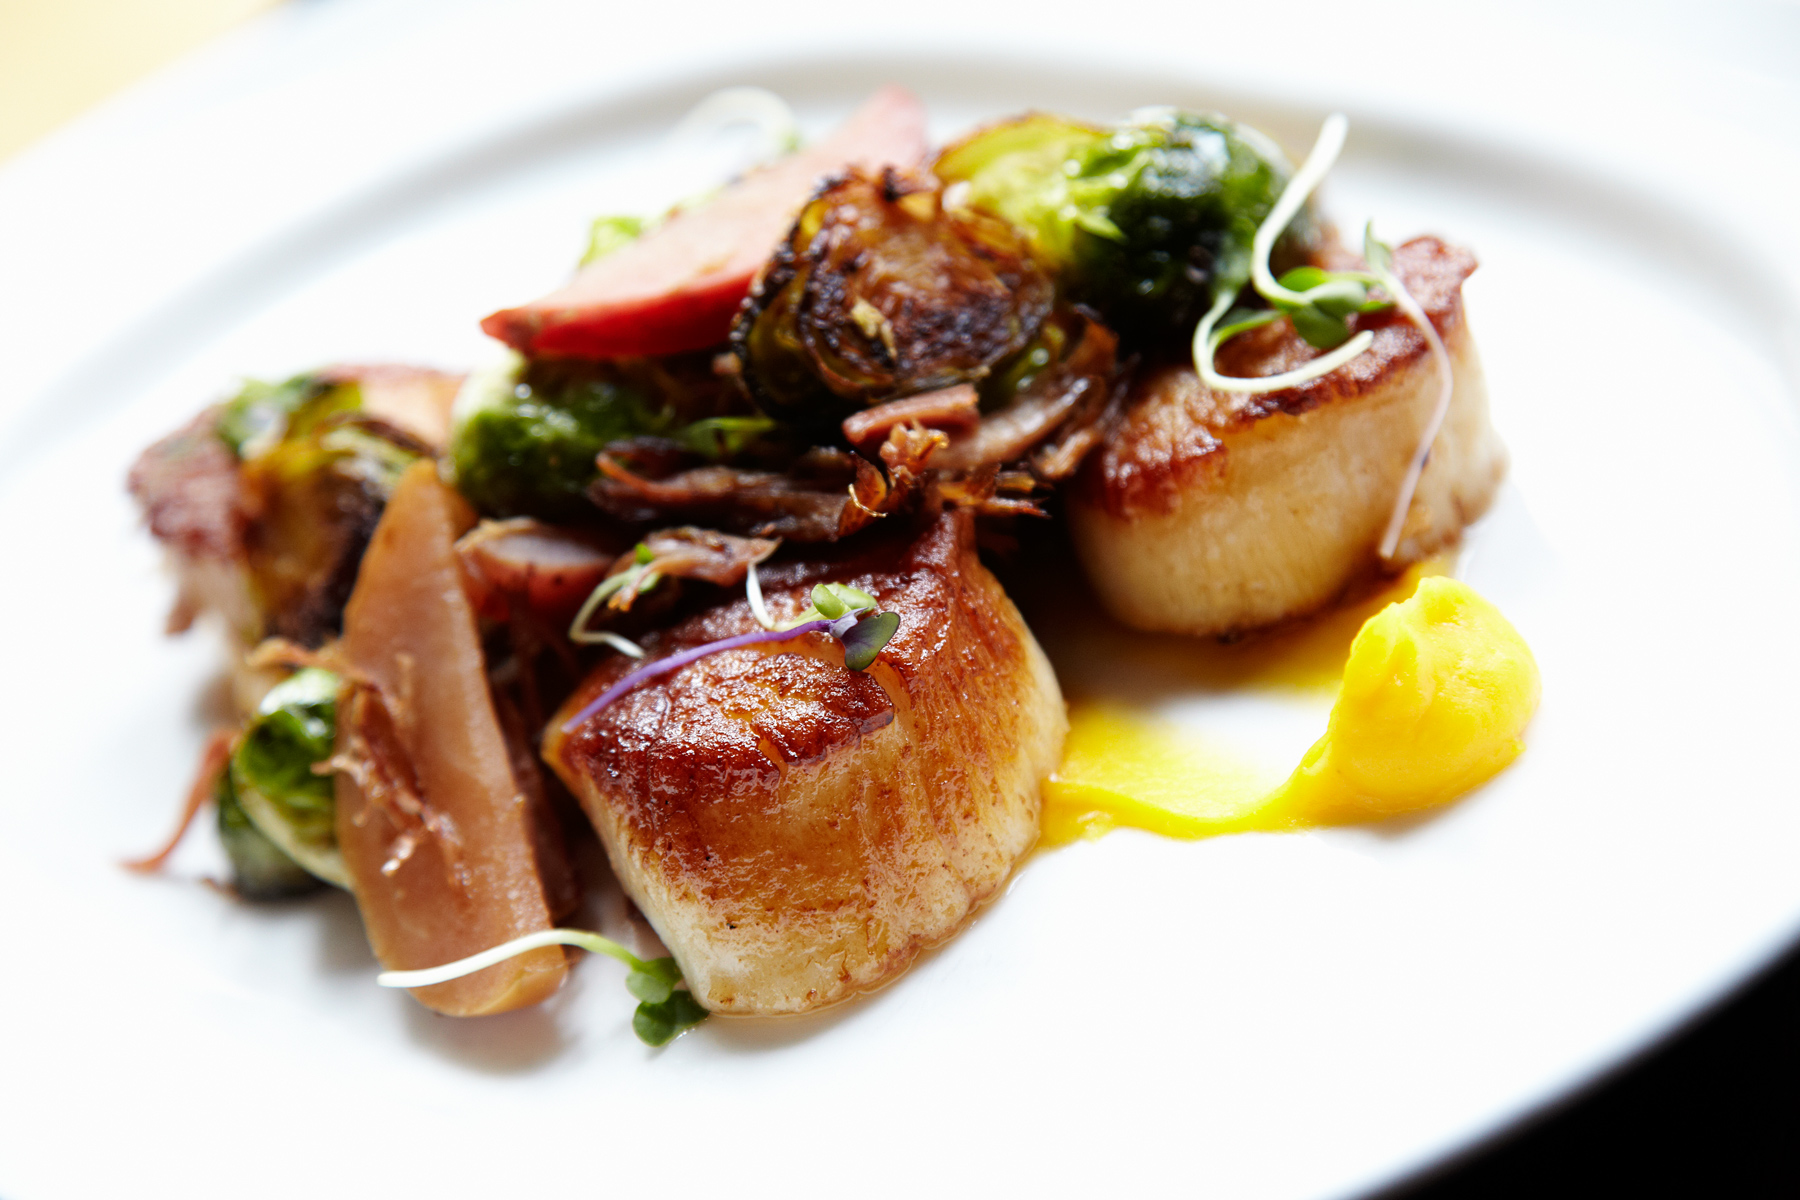 Seared Scallops photo by Chris Kessler Photography.  Chris Kessler is a freelance Photographer based in Milwaukee Wisconsin. Specializing in Food photography and portraiture.